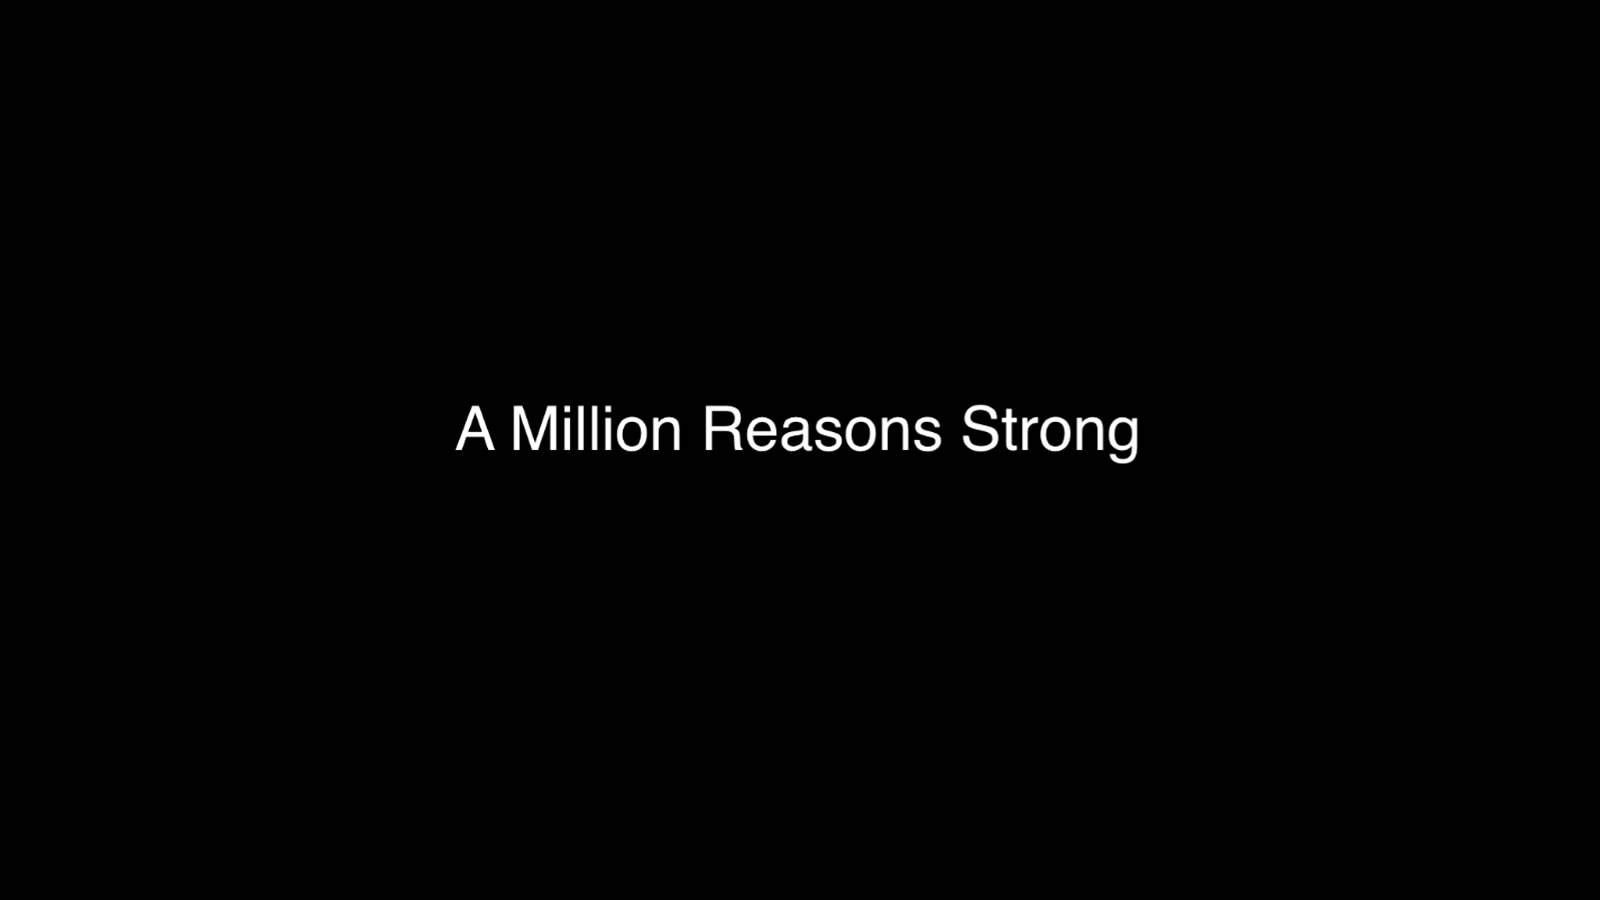 Million Reasons Strong